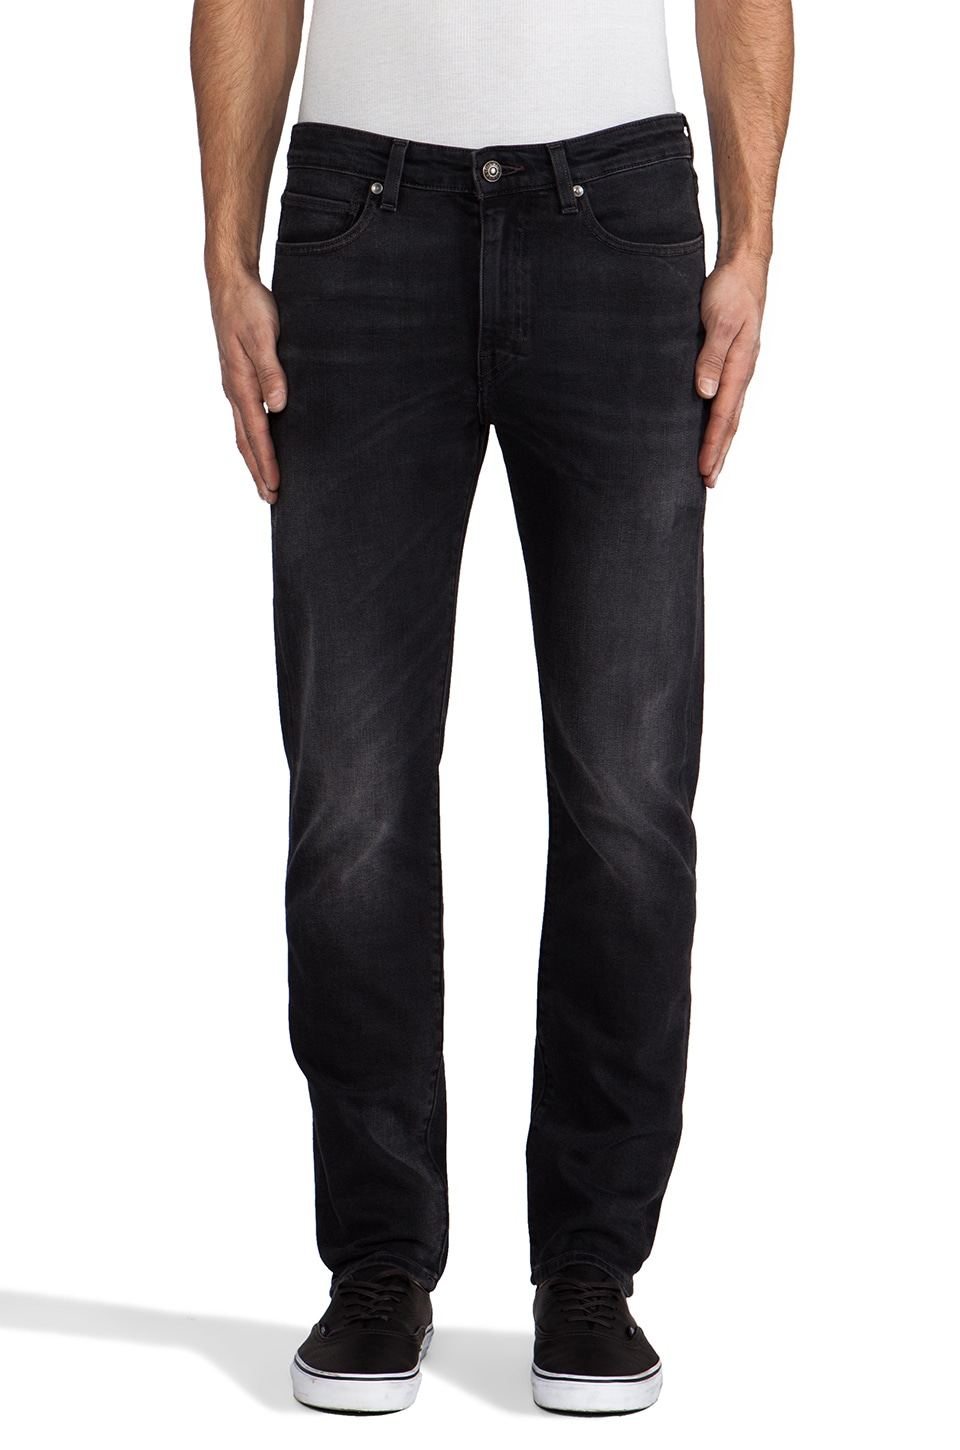 LEVI'S: Made & Crafted Needle Narrow in Black Pine